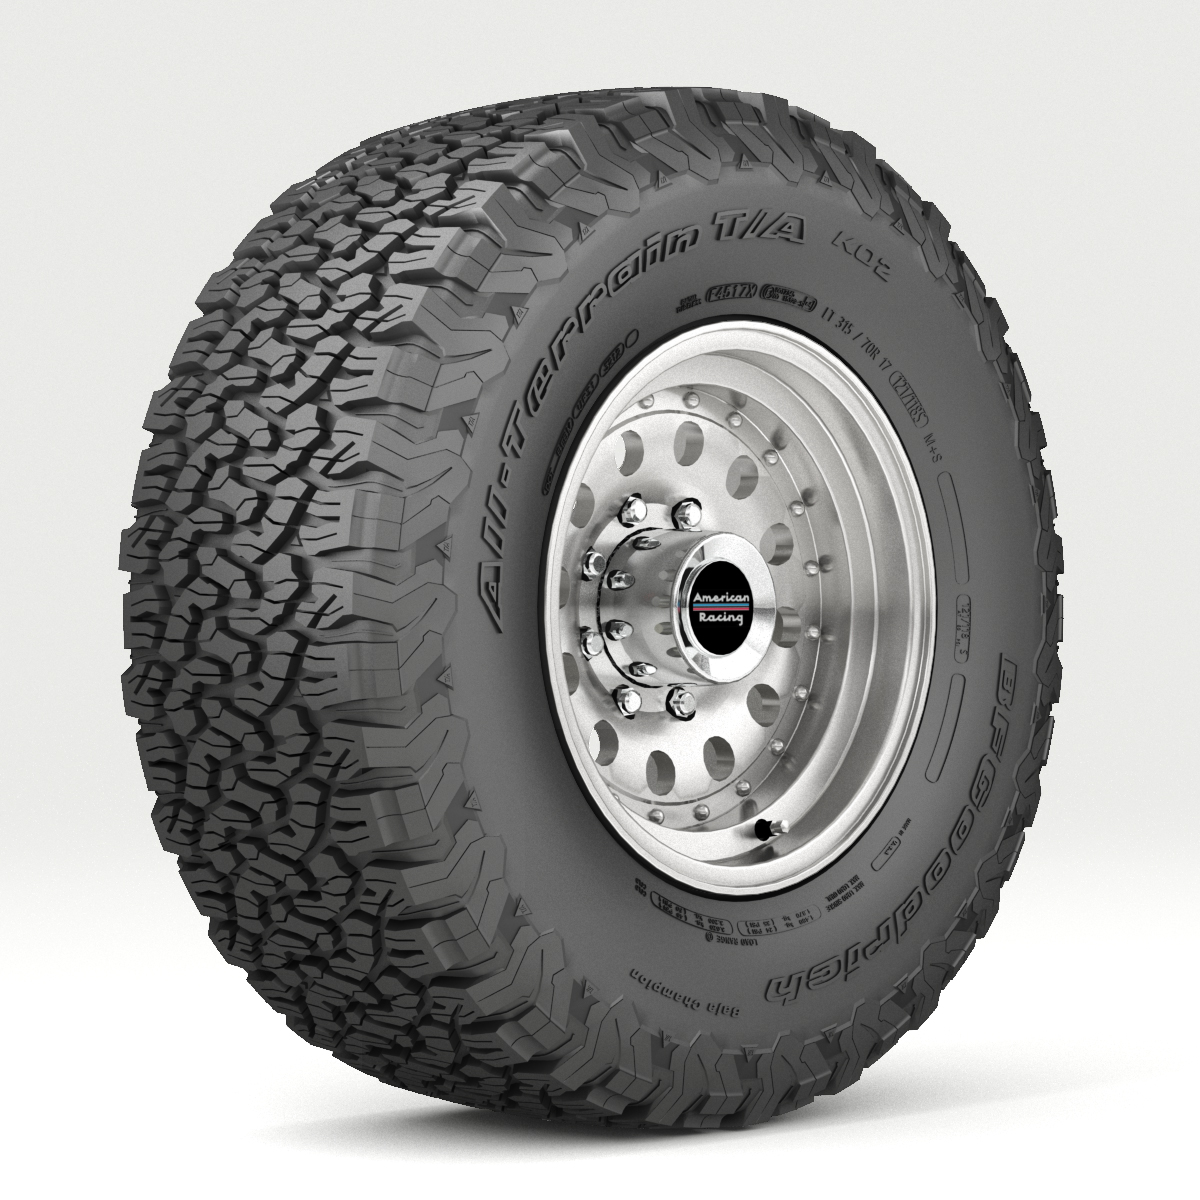 off road wheel and tire 5 3d model 3ds max fbx tga targa icb vda vst pix obj 224470